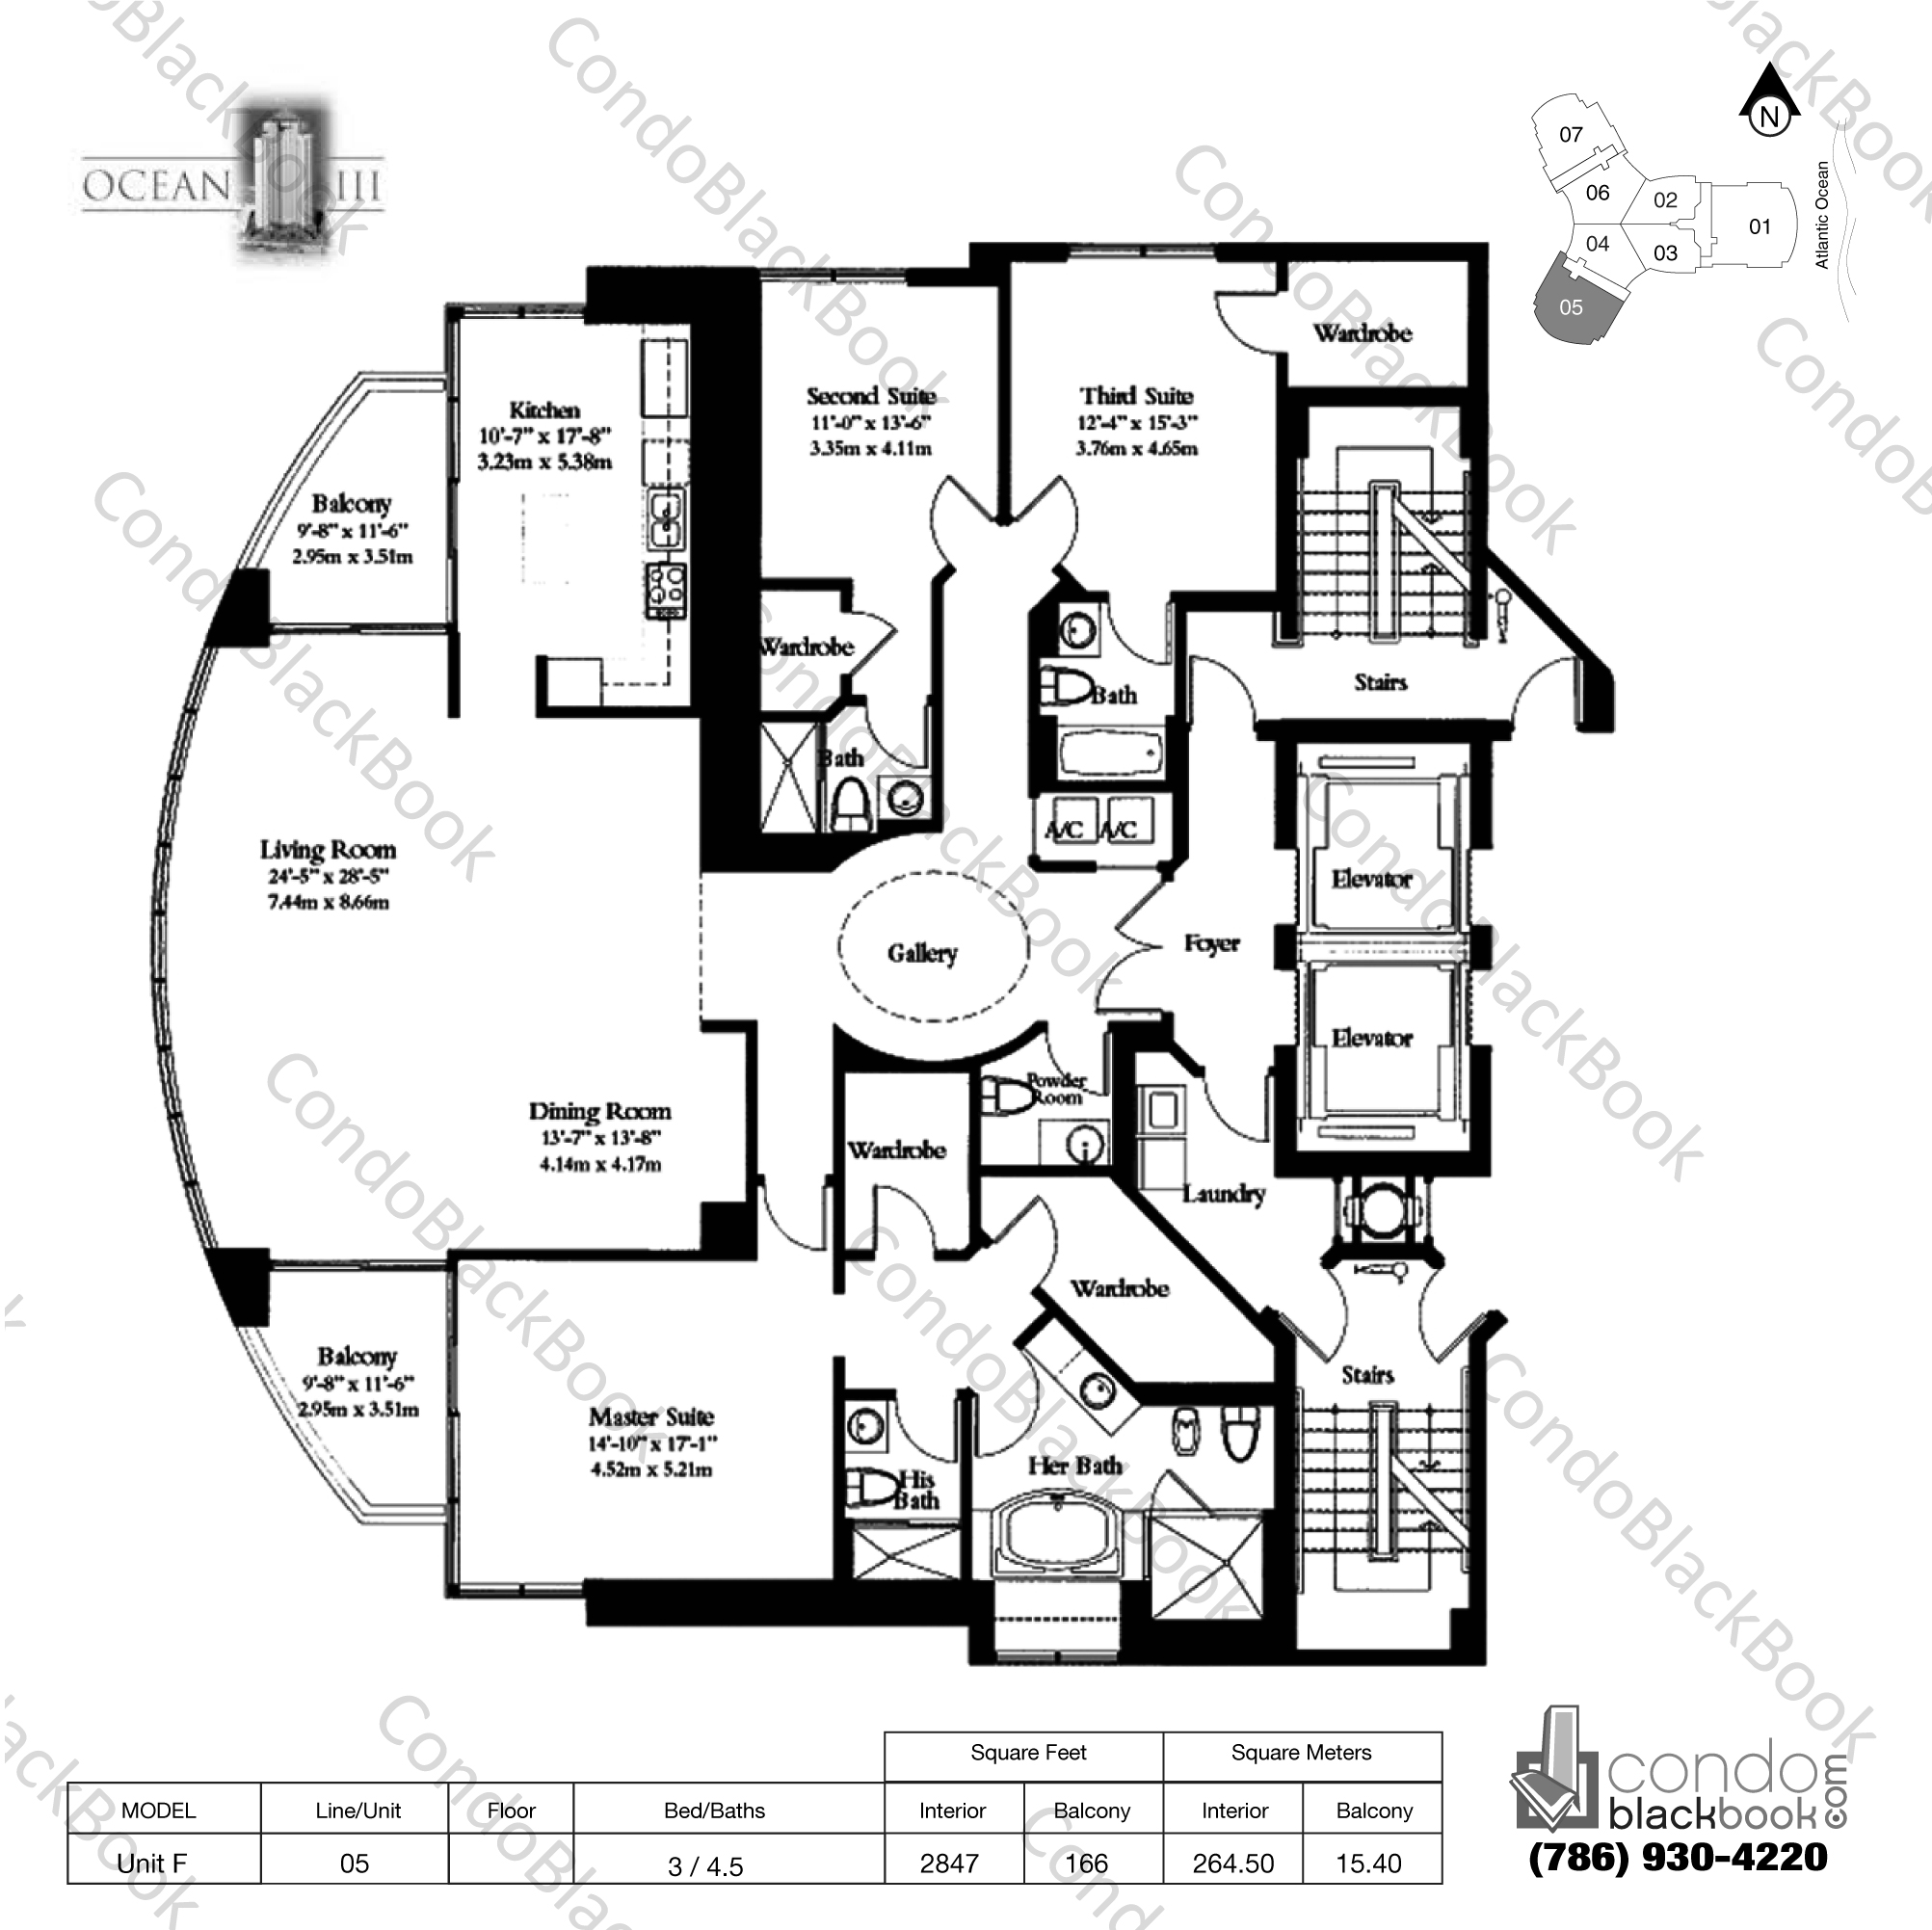 Floor plan for Ocean Three Sunny Isles Beach, model Unit F, line 05, 3 / 4.5 bedrooms, 2847 sq ft